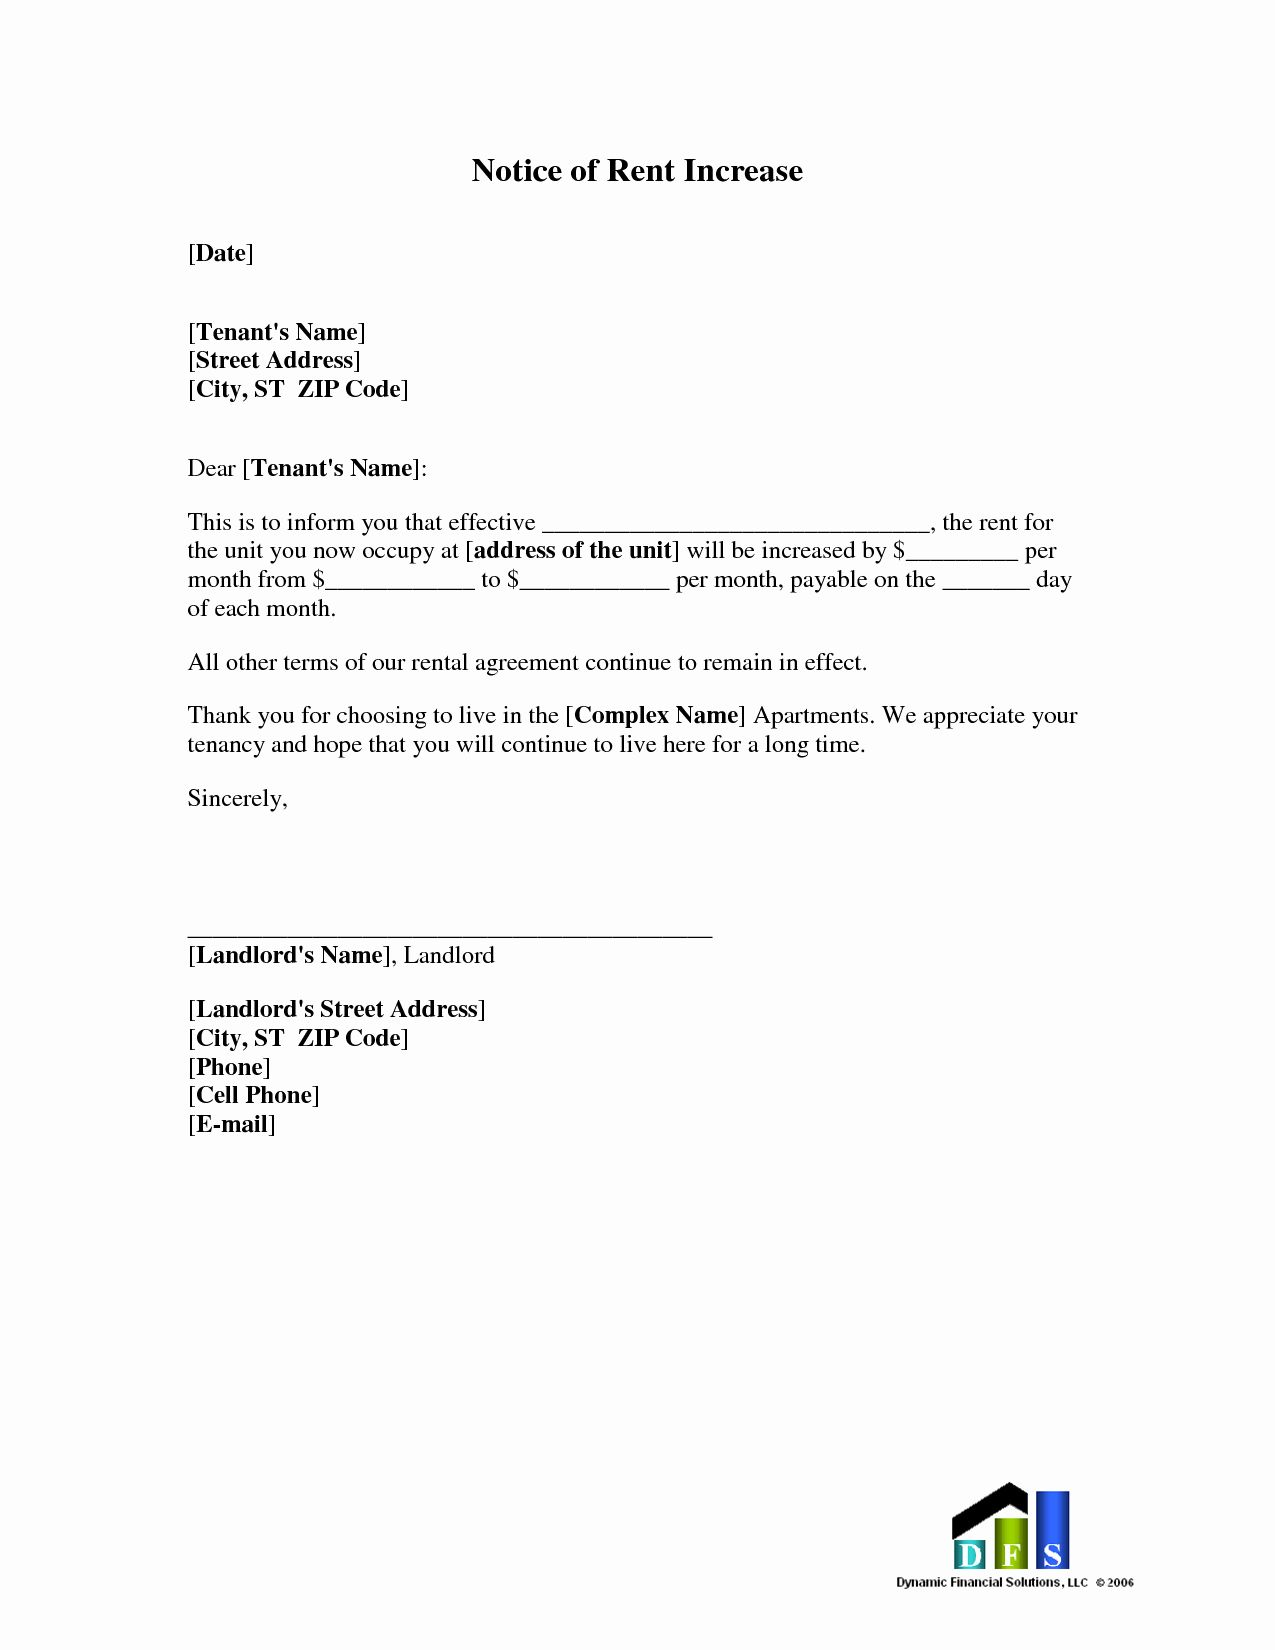 Rental Increase Letter Template New Best S Of Rent Increase Letter To T Cover Letter Template Free Newsletter Templates Word Professional Cover Letter Template